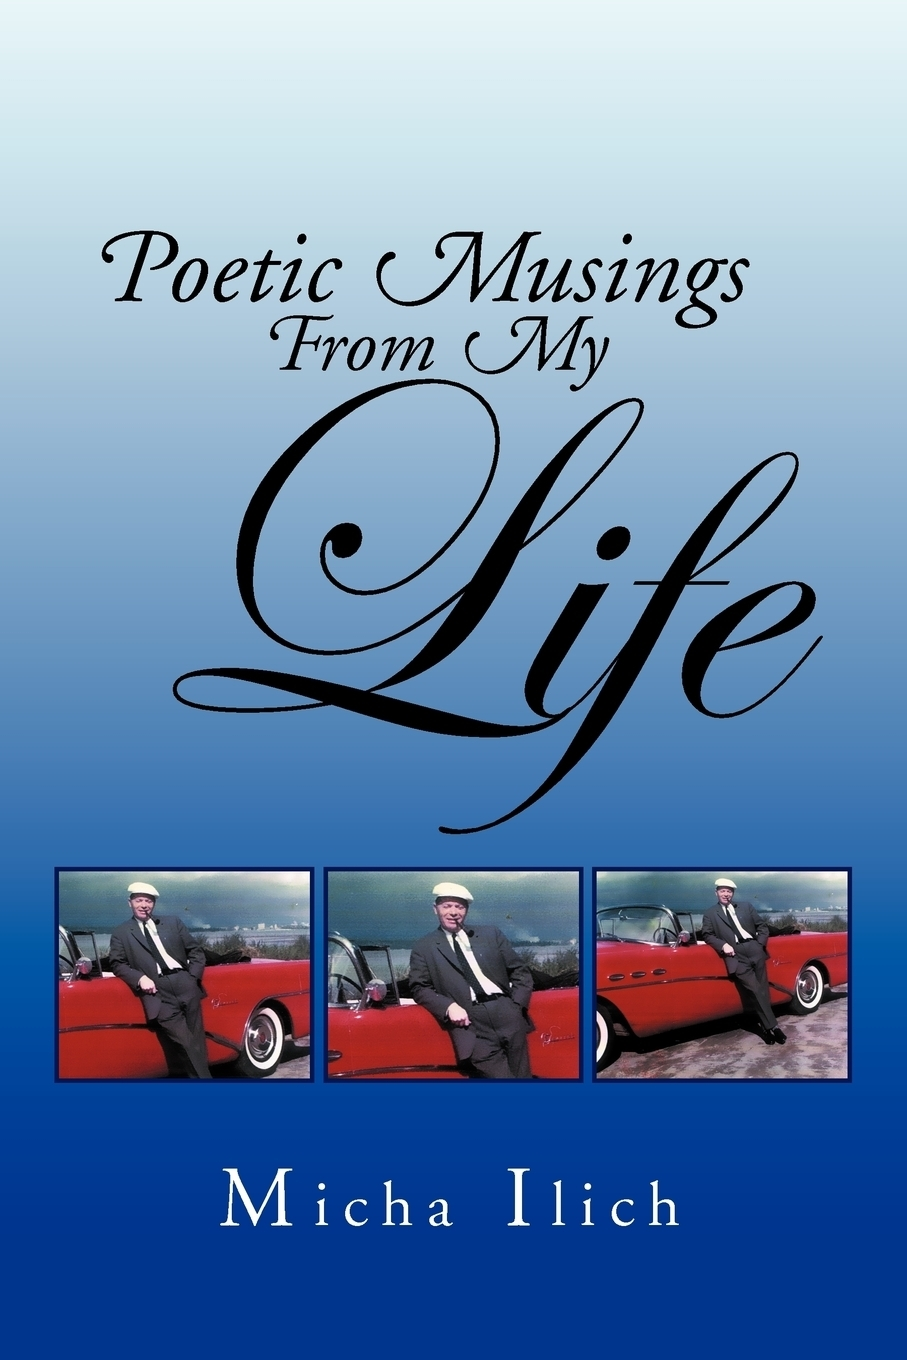 MICHA ILICH. POETIC MUSINGS FROM MY LIFE